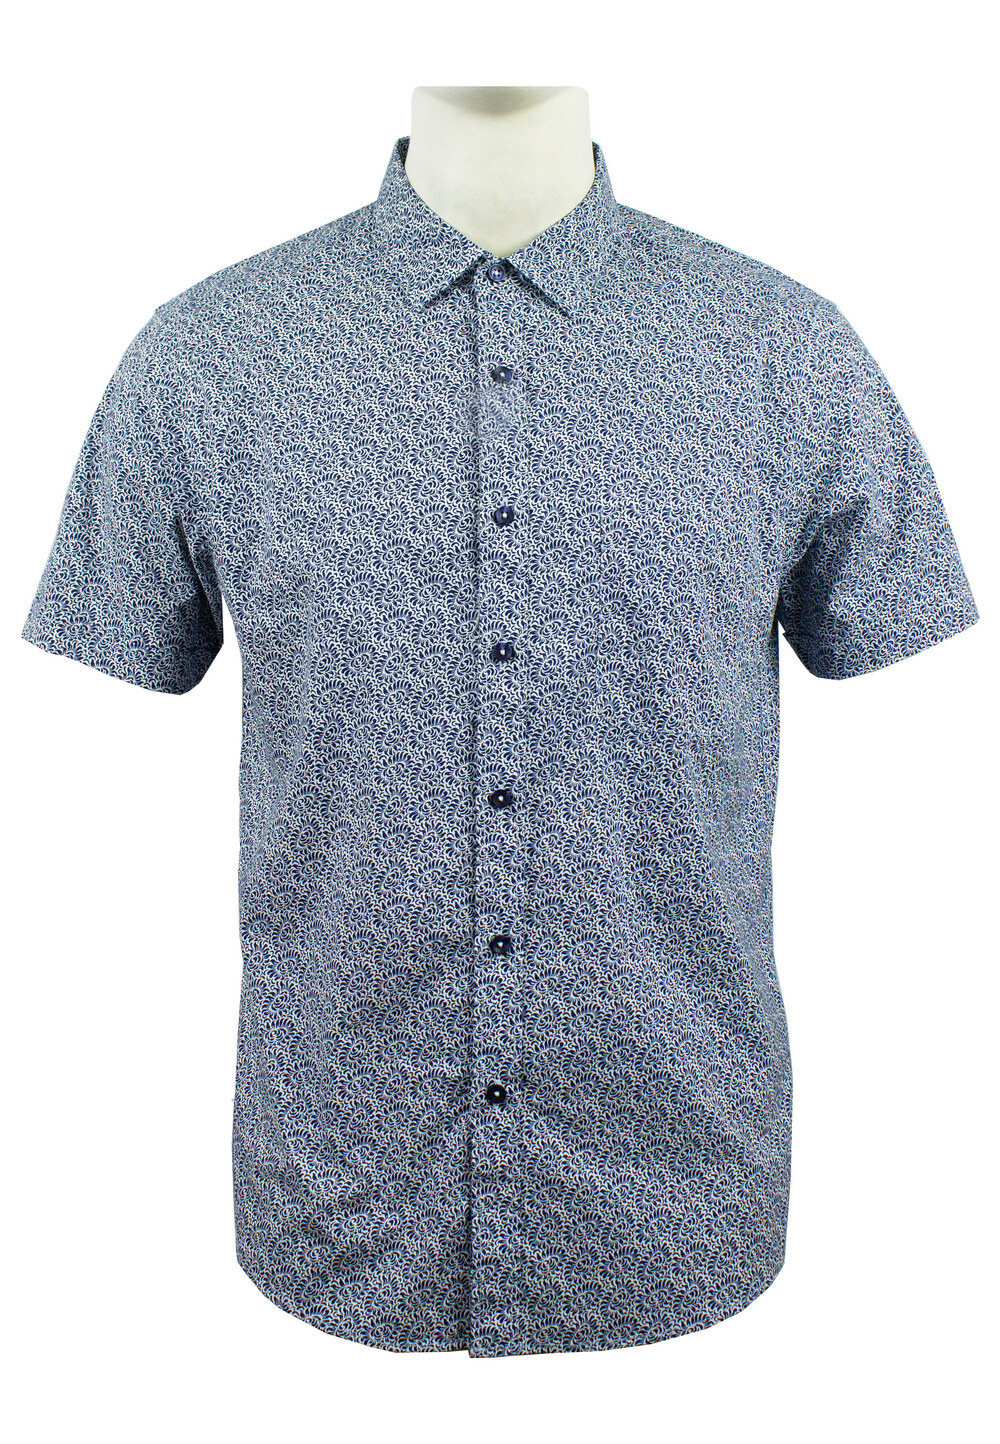 Men's Printed Short Sleeve Shirt 882